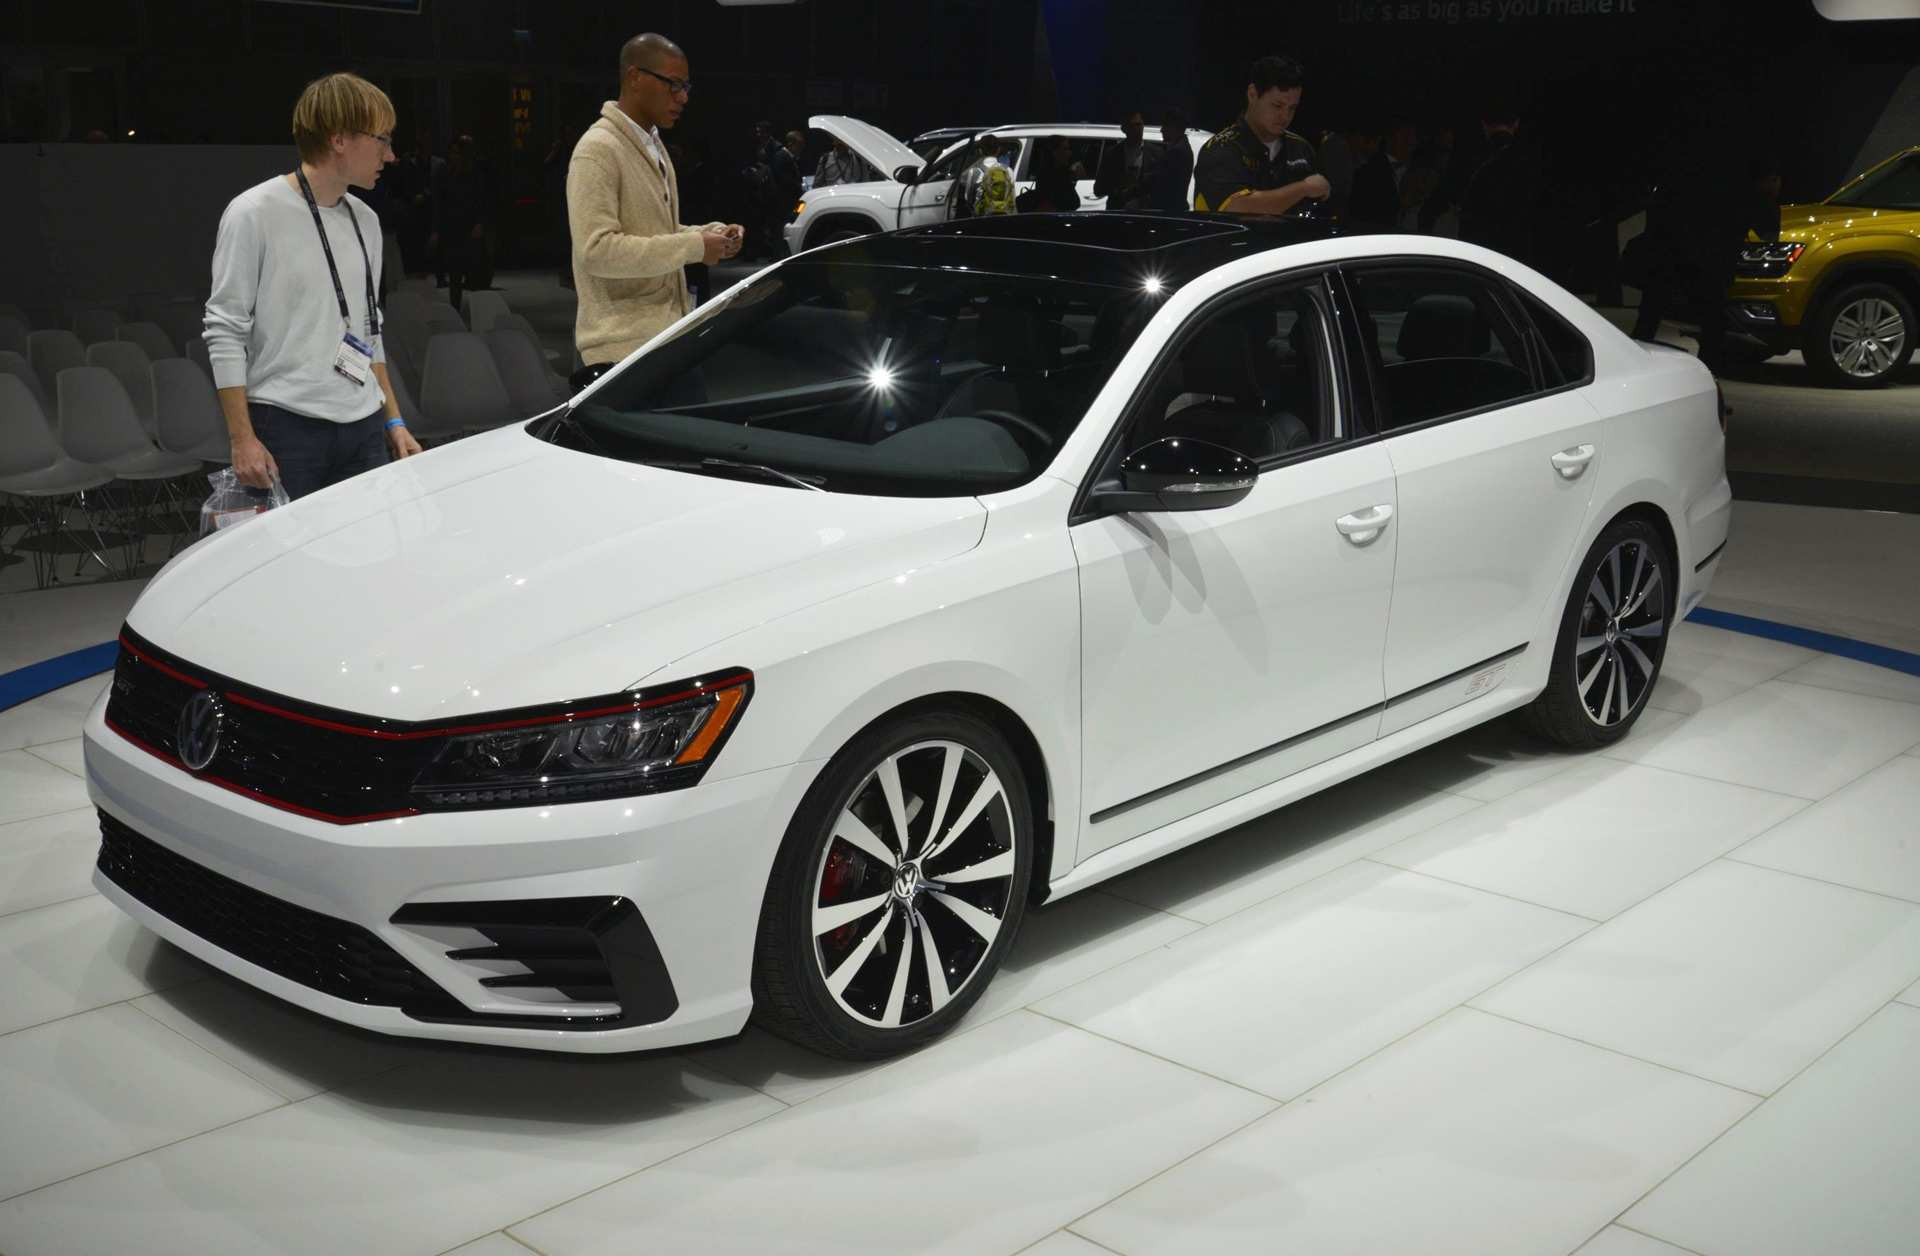 34 Gallery of 2020 VW Passat Gt Overview with 2020 VW Passat Gt